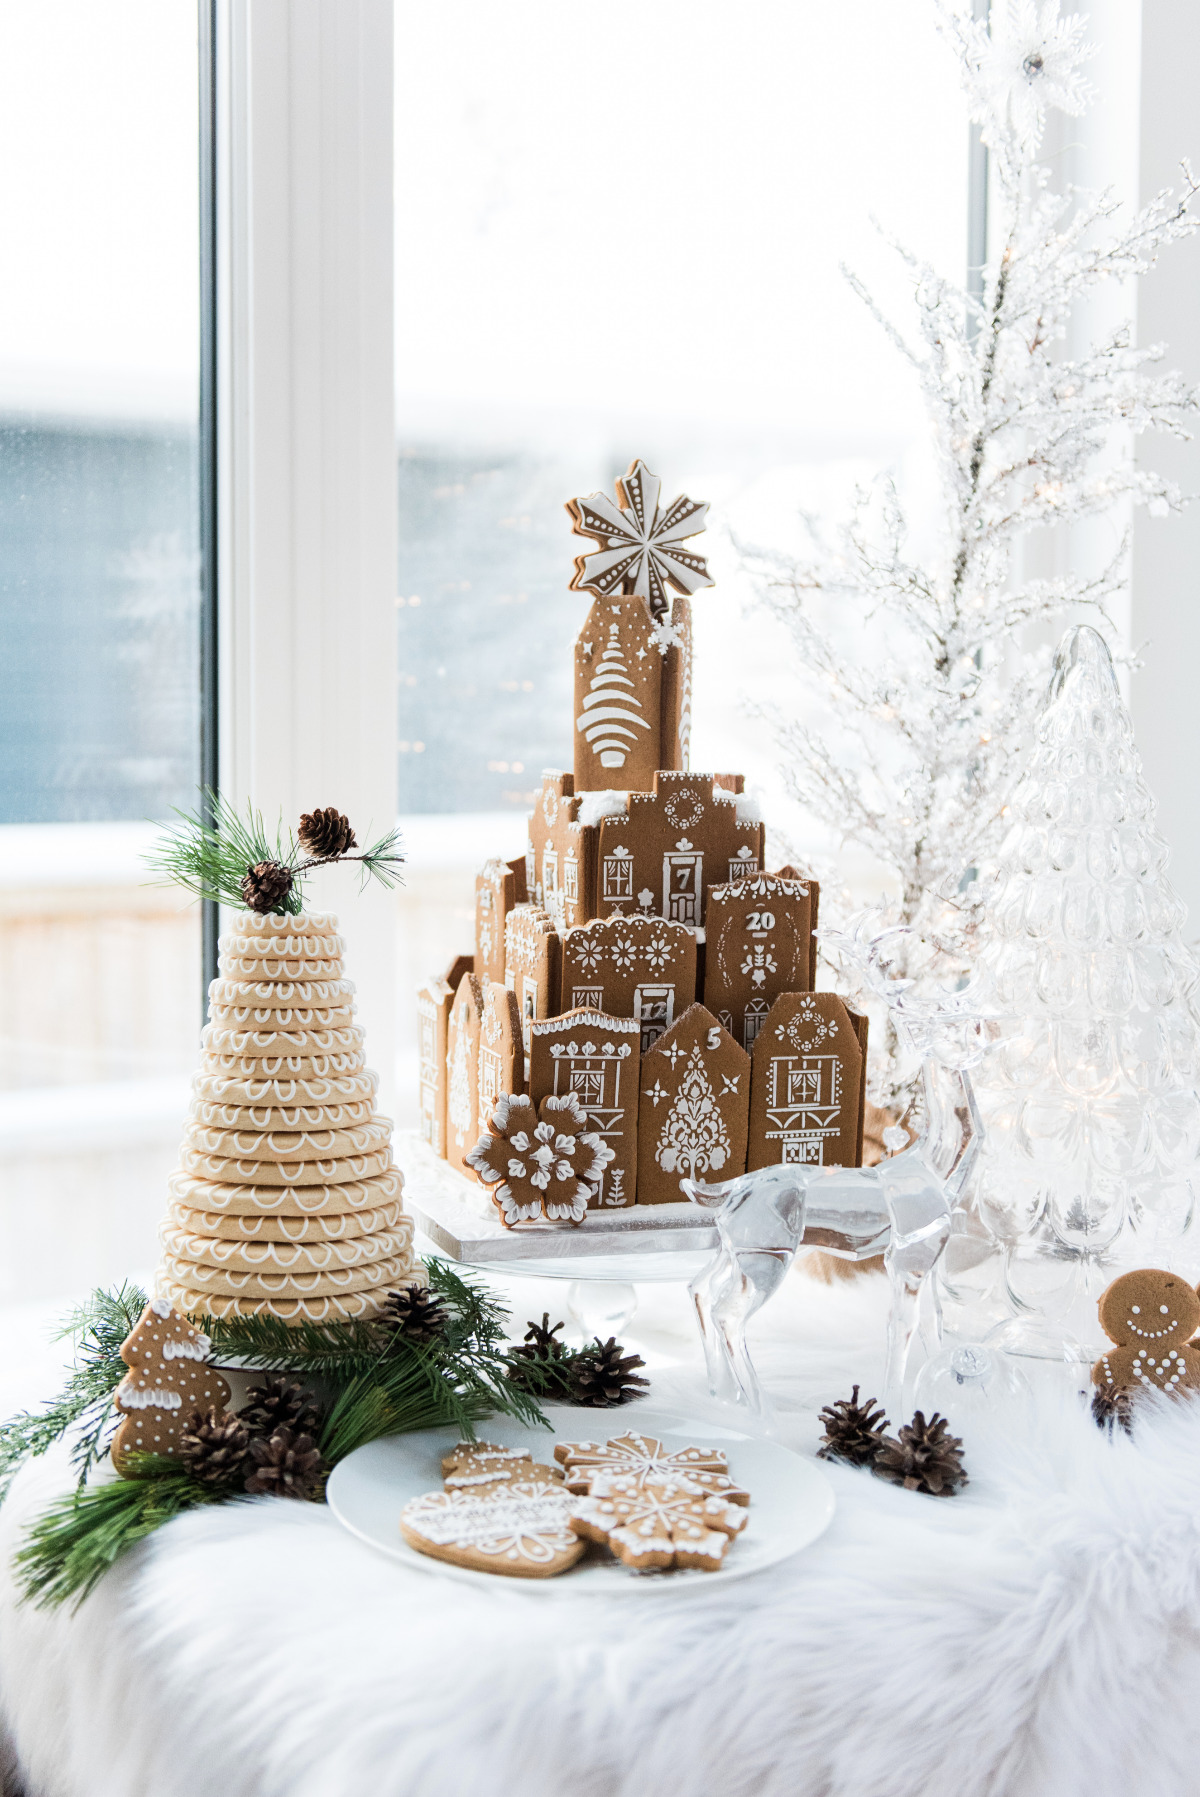 Ginger bread wedding cake design